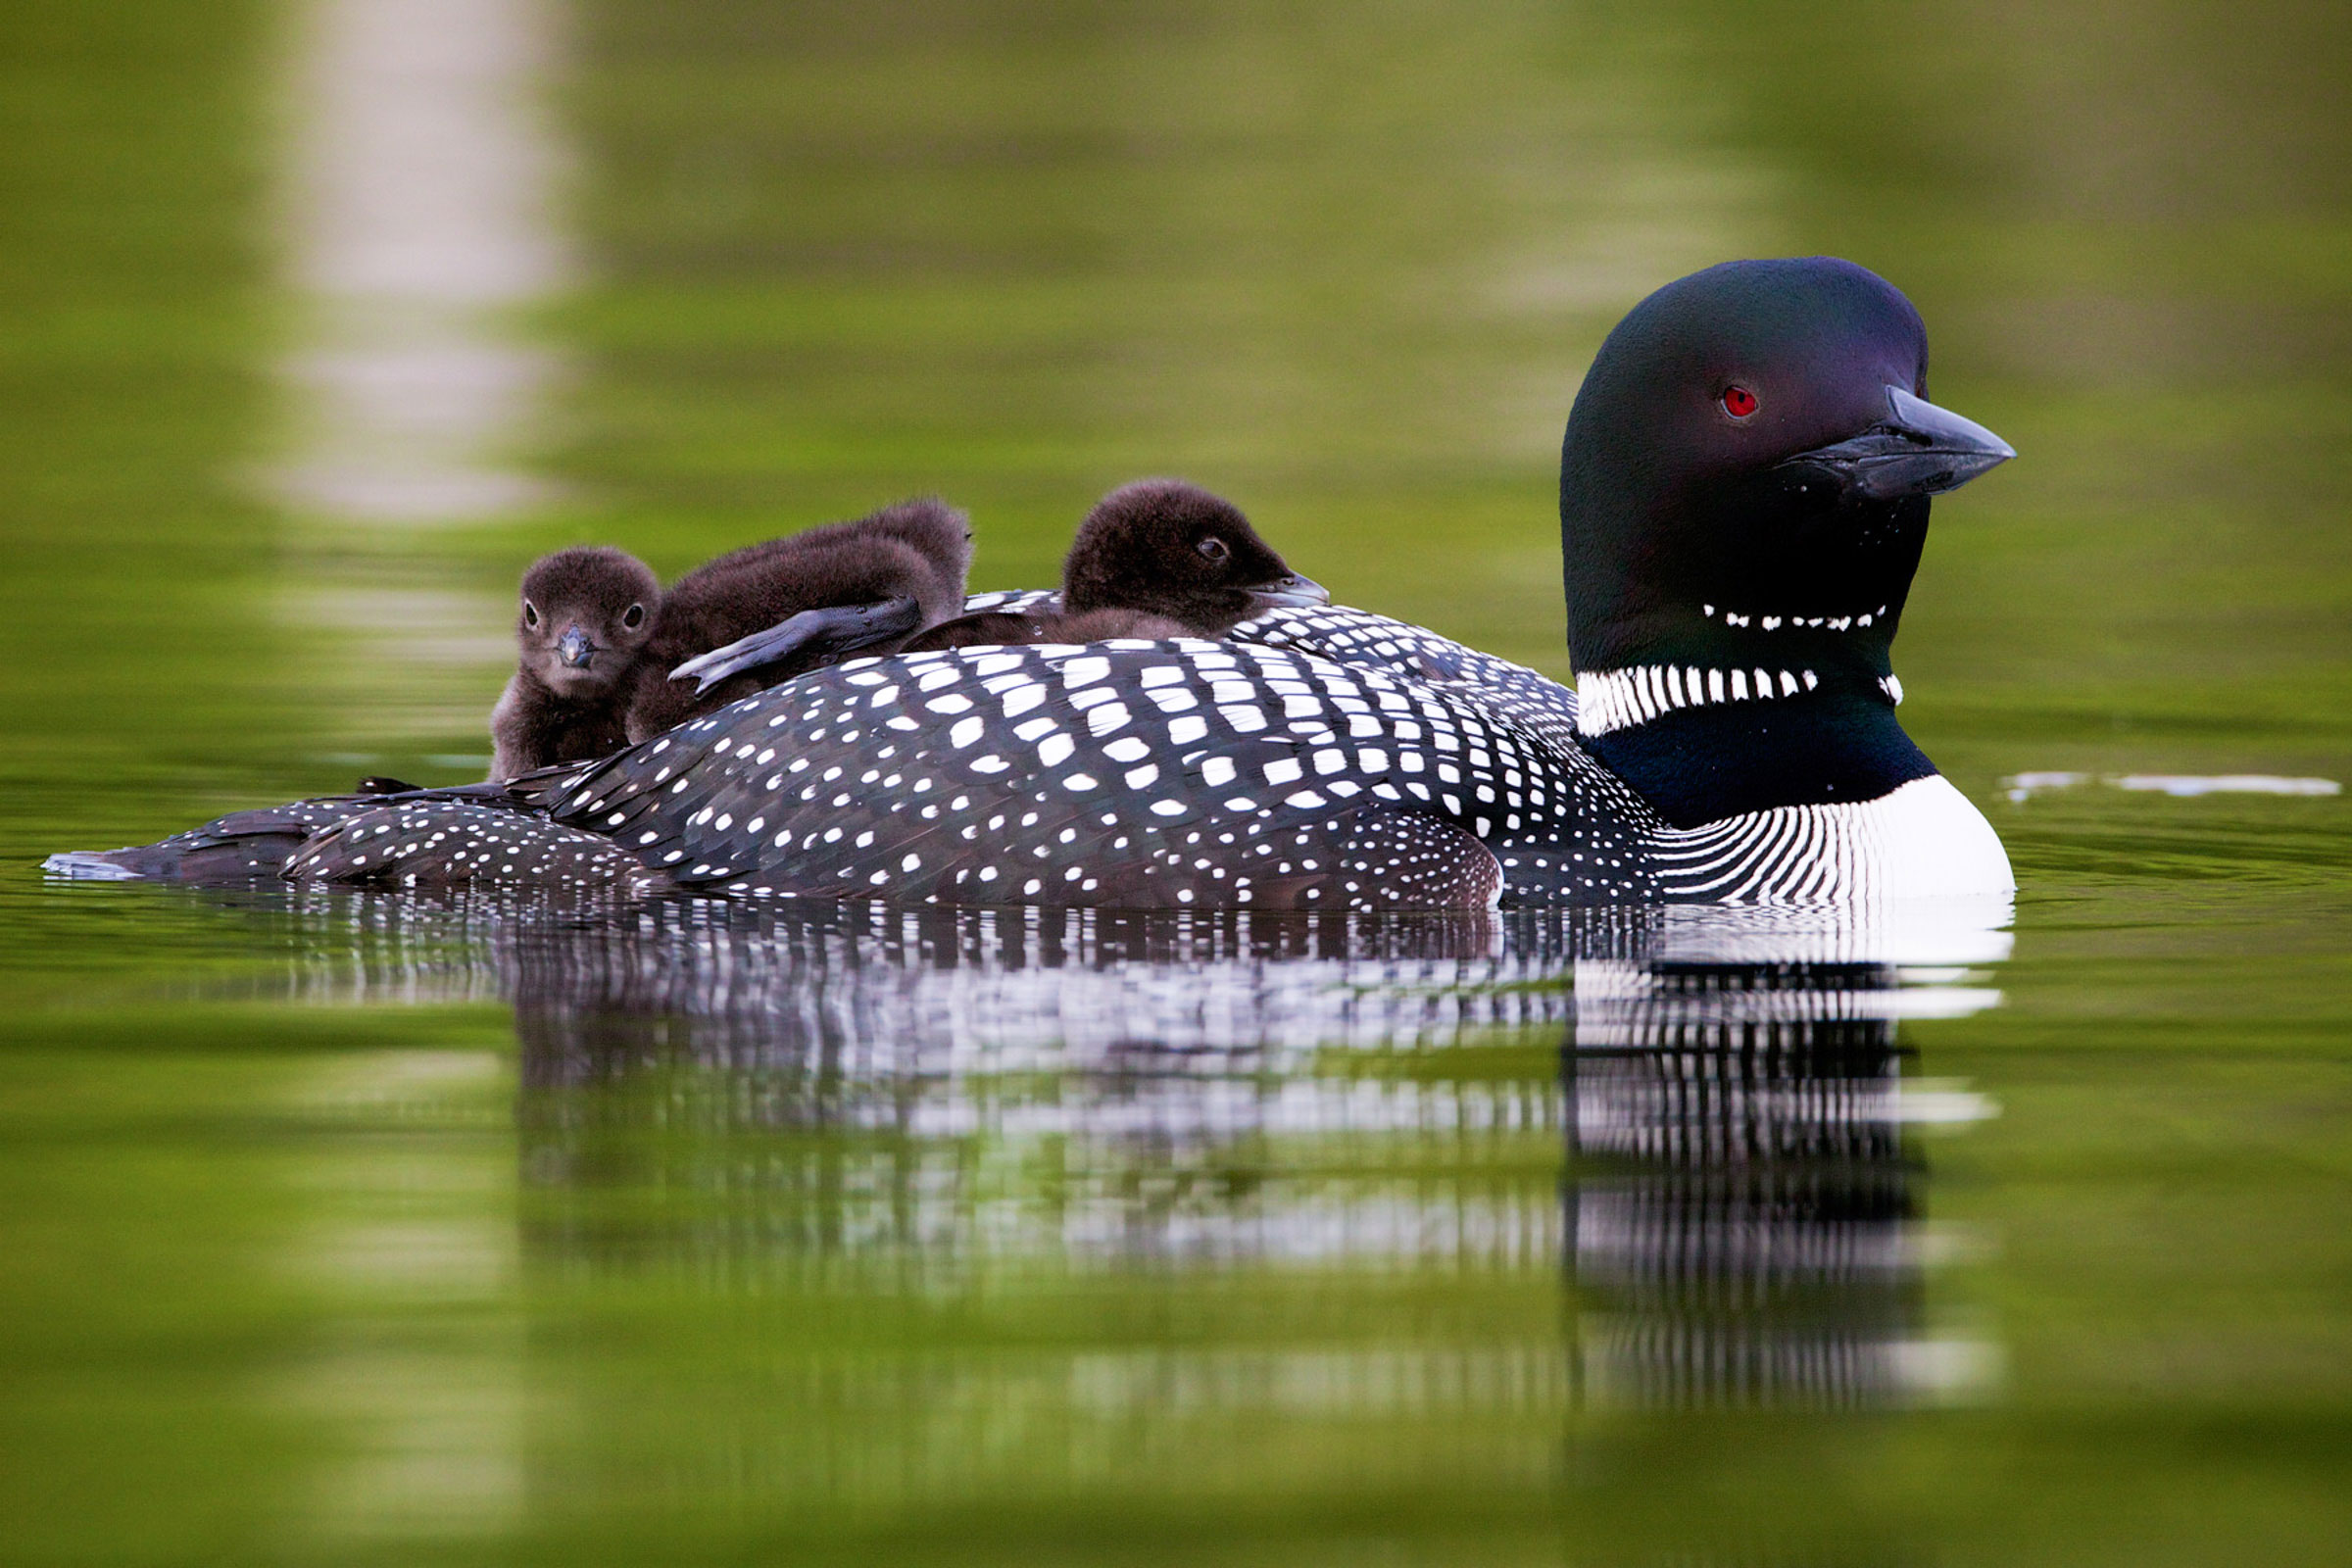 By the end of the century, Minnesota will likely no longer host its iconic Common Loons in the summertime because of climate change. Timothy Lenahan/Audubon Photography Awards